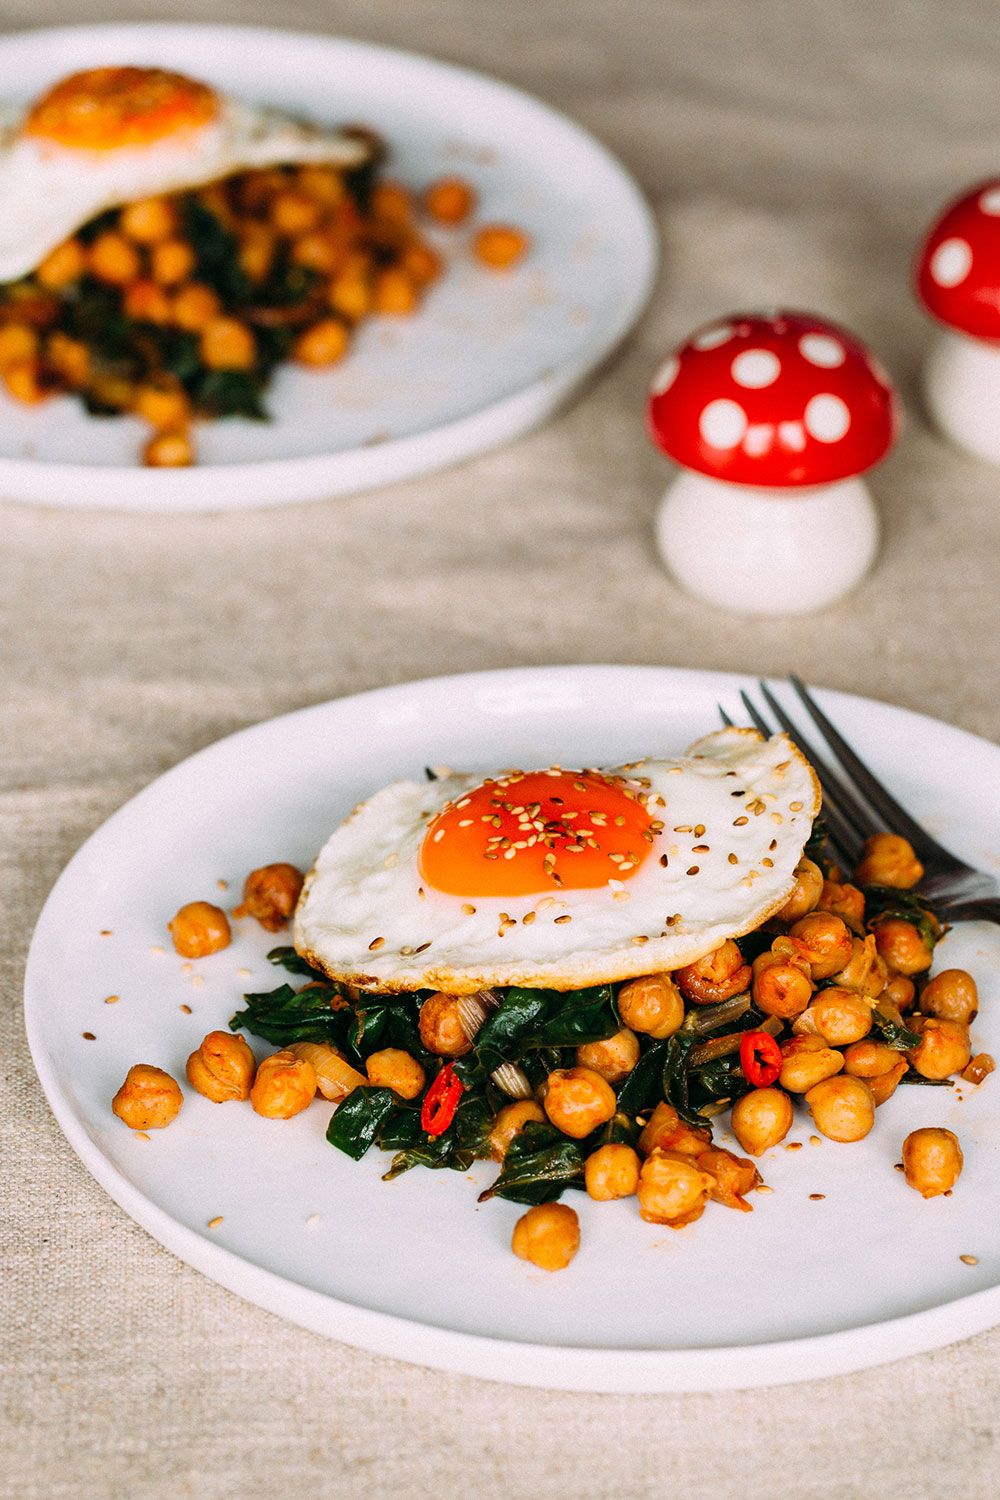 fried-eggs-and-chick-peas-1.jpg